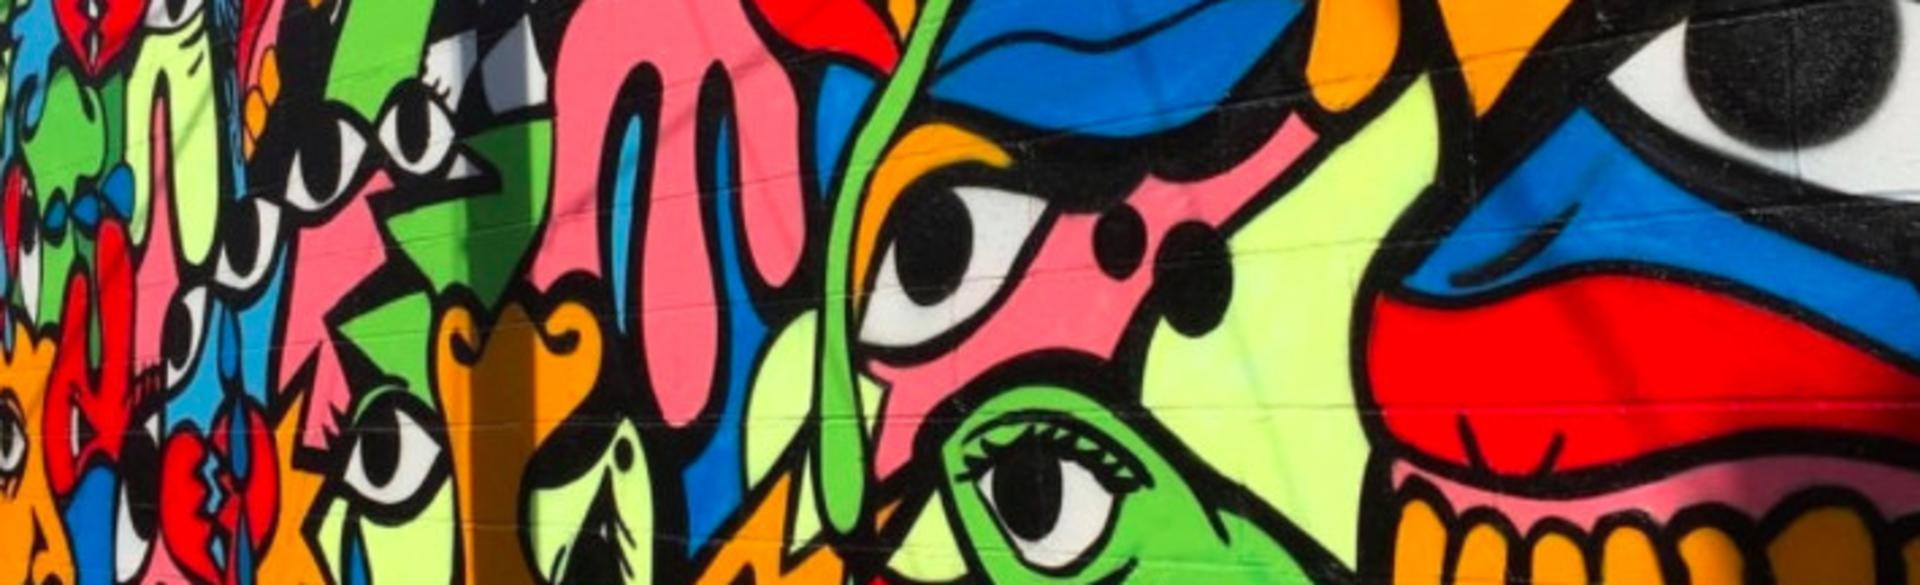 Street Artists Coming to Grand Rapids to Add Art for